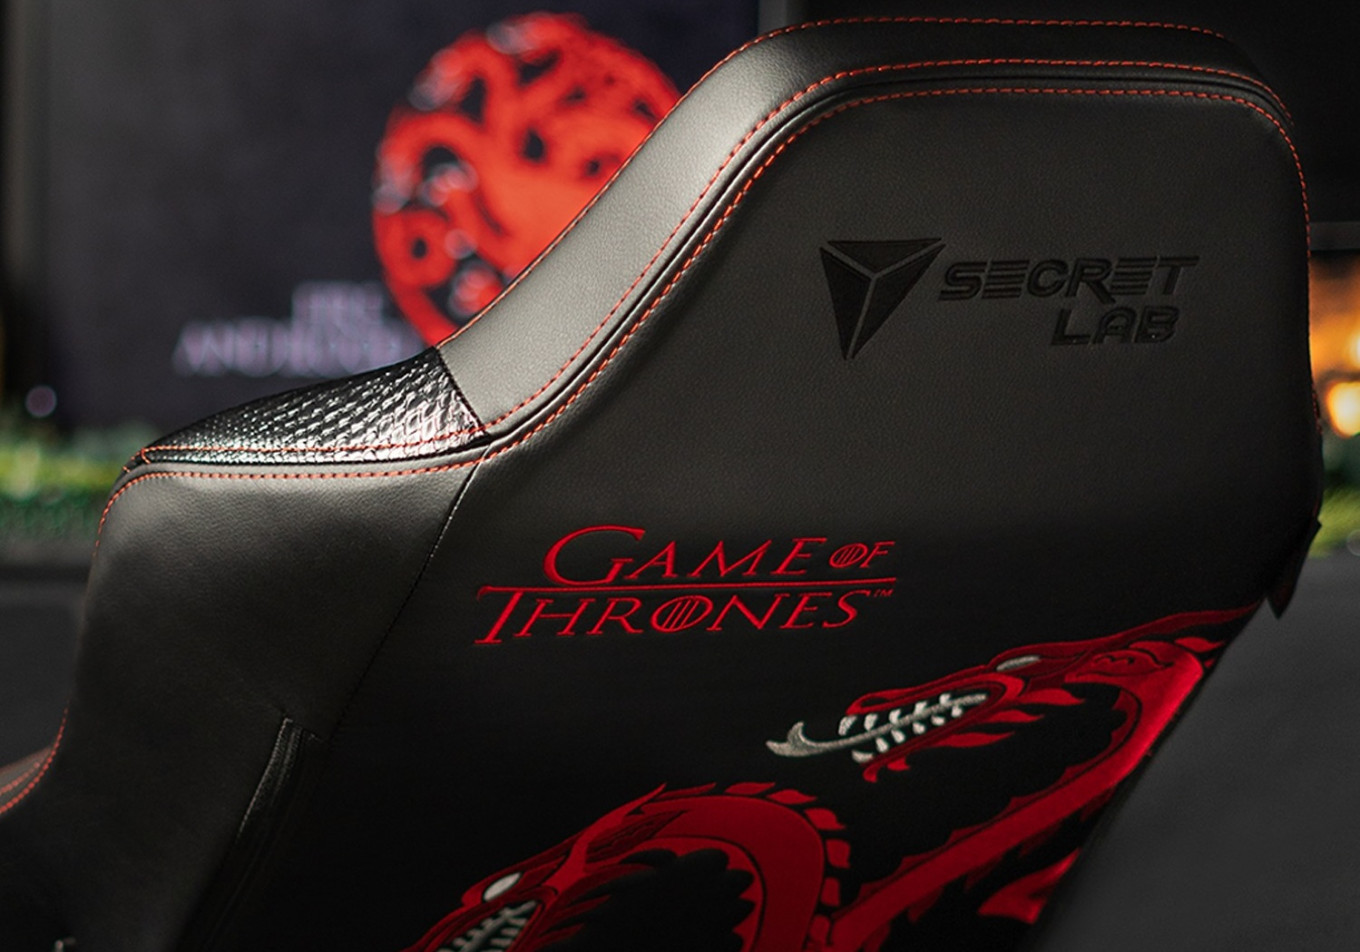 'Game of Thrones' gaming chairs available for die-hard fans